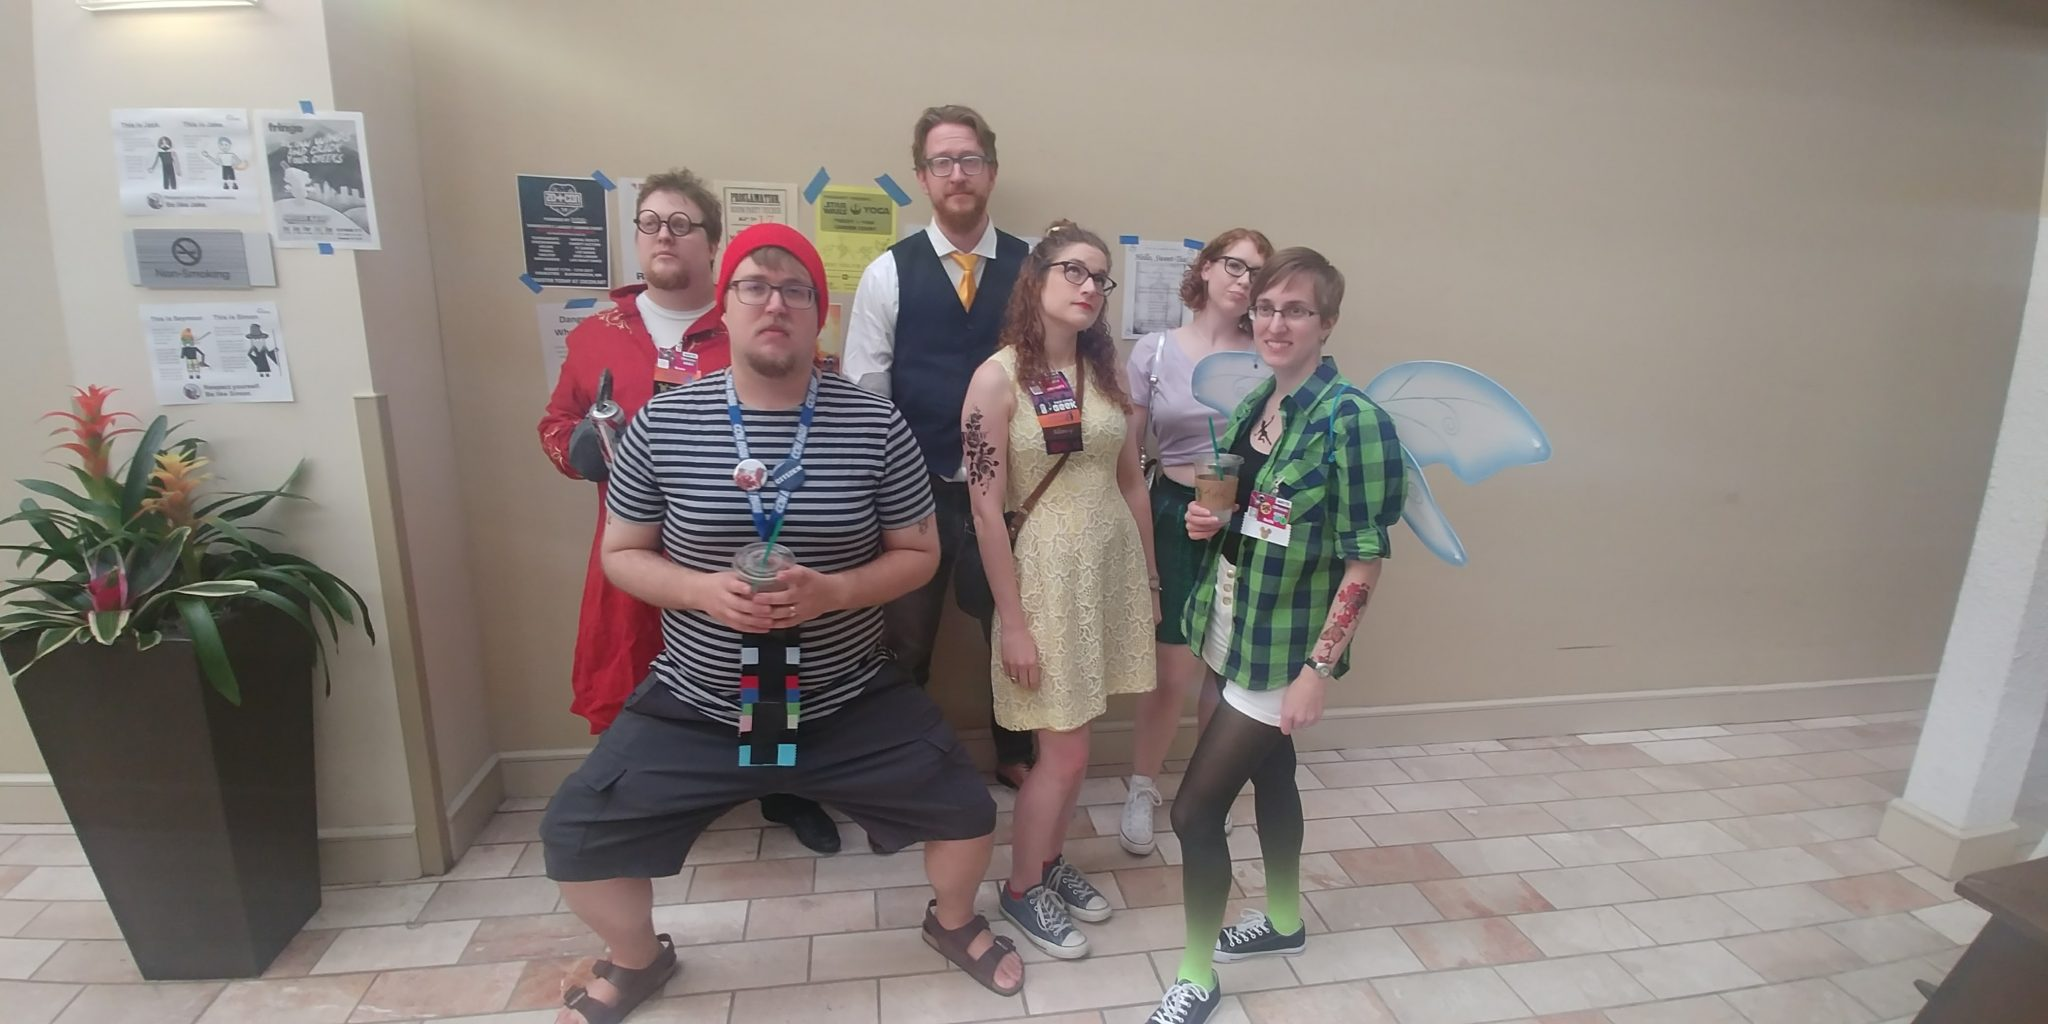 A group of friends dressed as hipster versions of Disney characters stands agains a beige wall, looking unimpressed